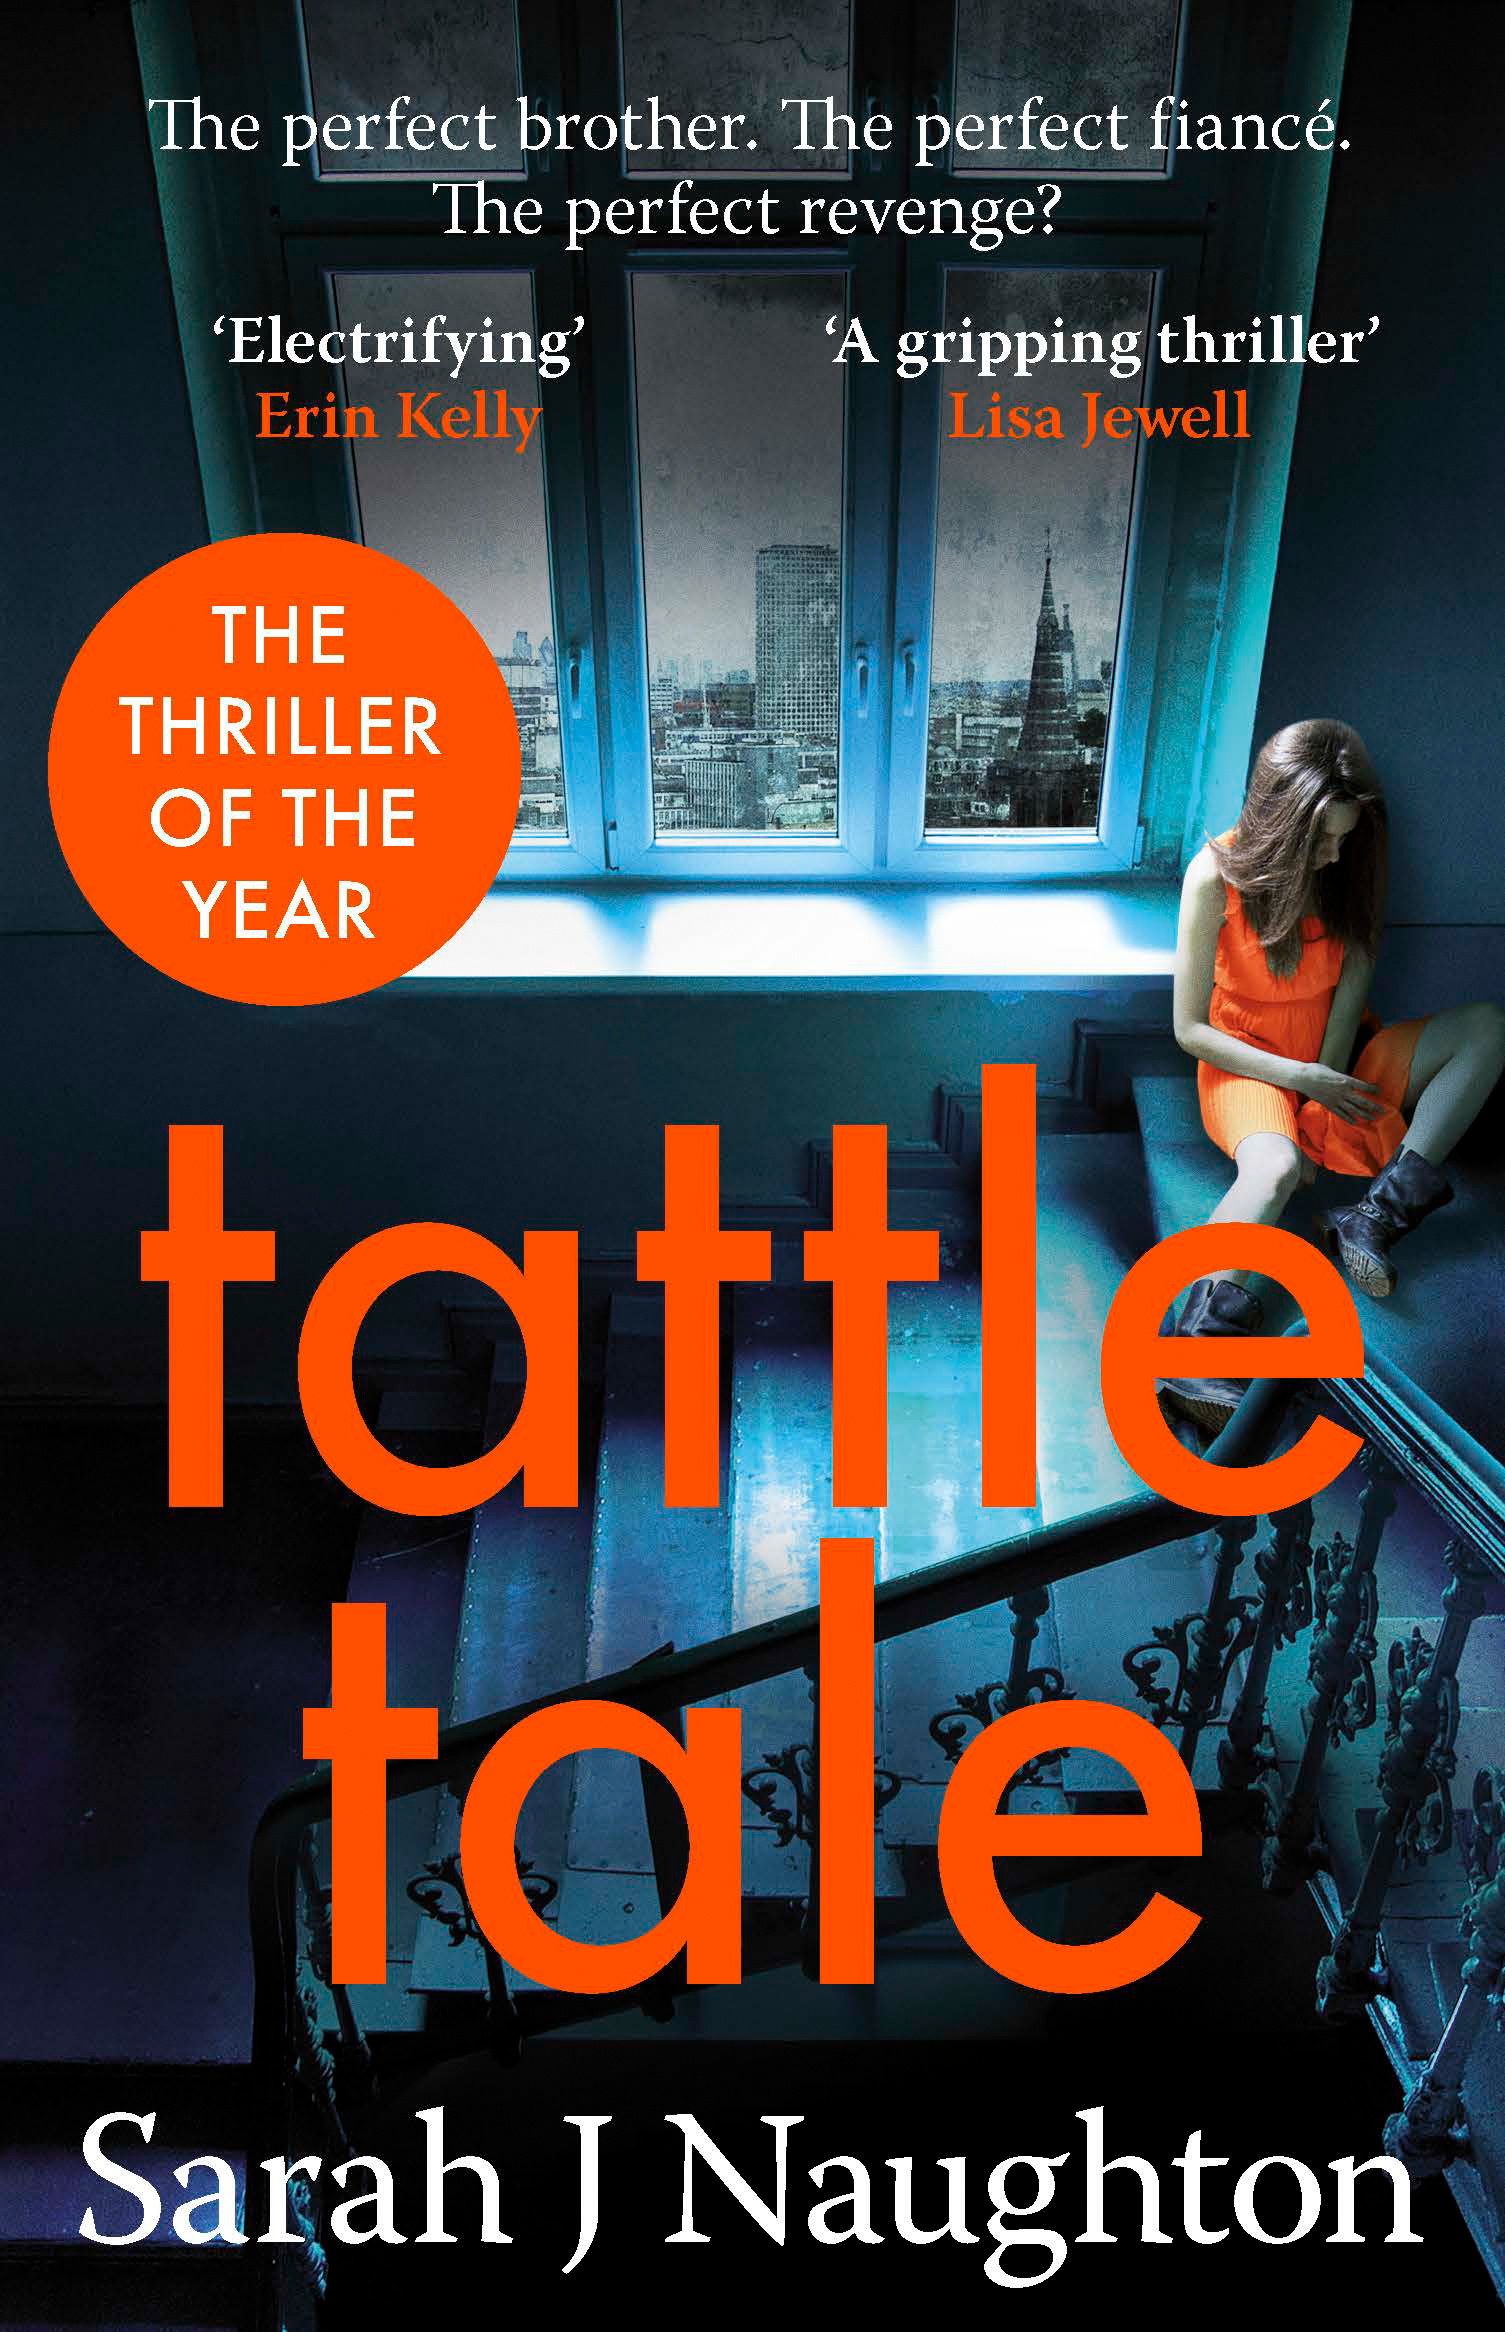 Tattletale Book Cover